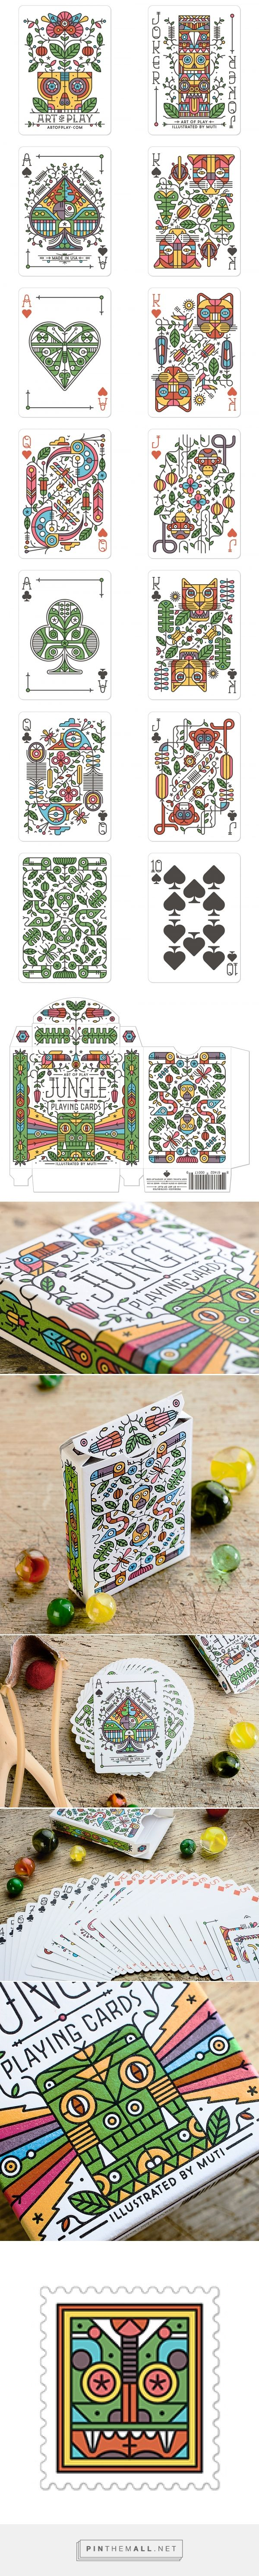 best Packaging images on Pinterest  Creativity Design